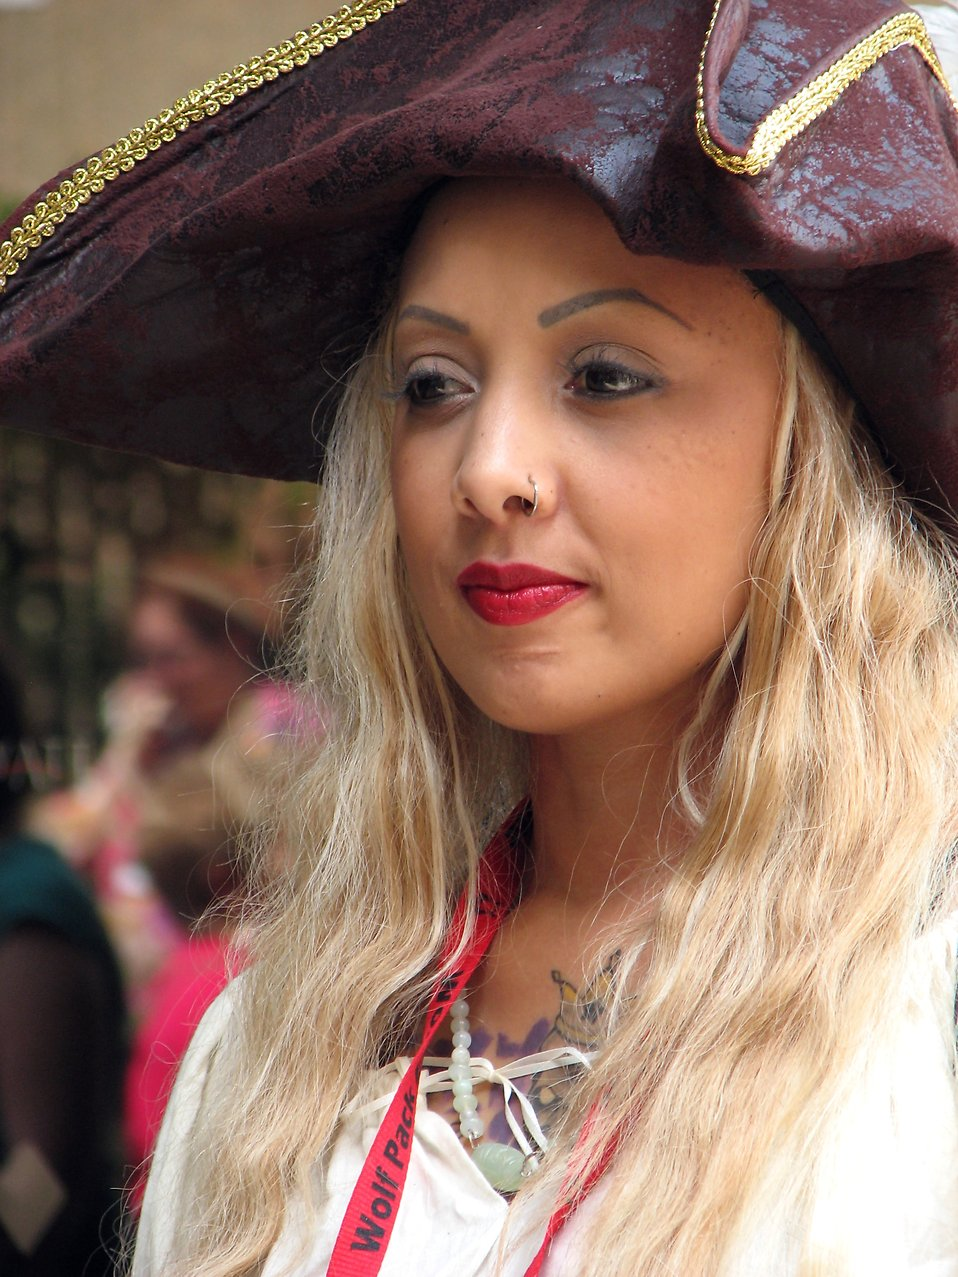 Portrait of a beautiful woman pirate at Dragoncon 2008 : Free Stock Photo